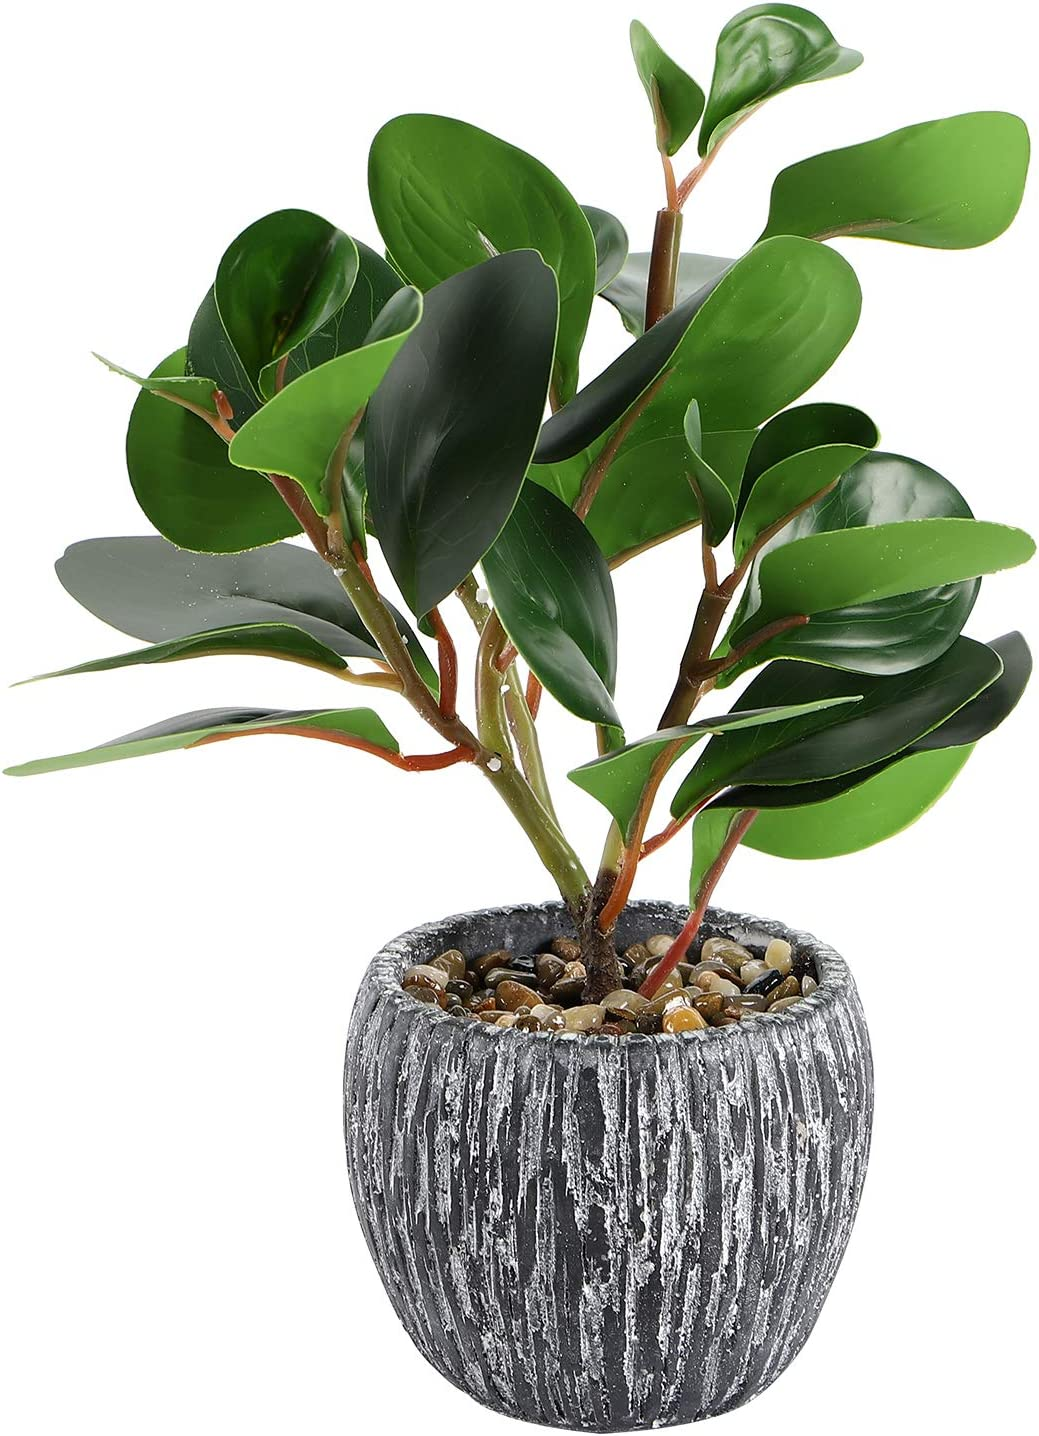 Artificial Potted Plants - Small Faux Plants Indoor Mini Real Looking Plastic Fiddle Leaf Fig Plant With Rustic Black Cement Planter For Home Decor, Office, Desk, Dinning Room Table, Bathroom, Kitchen